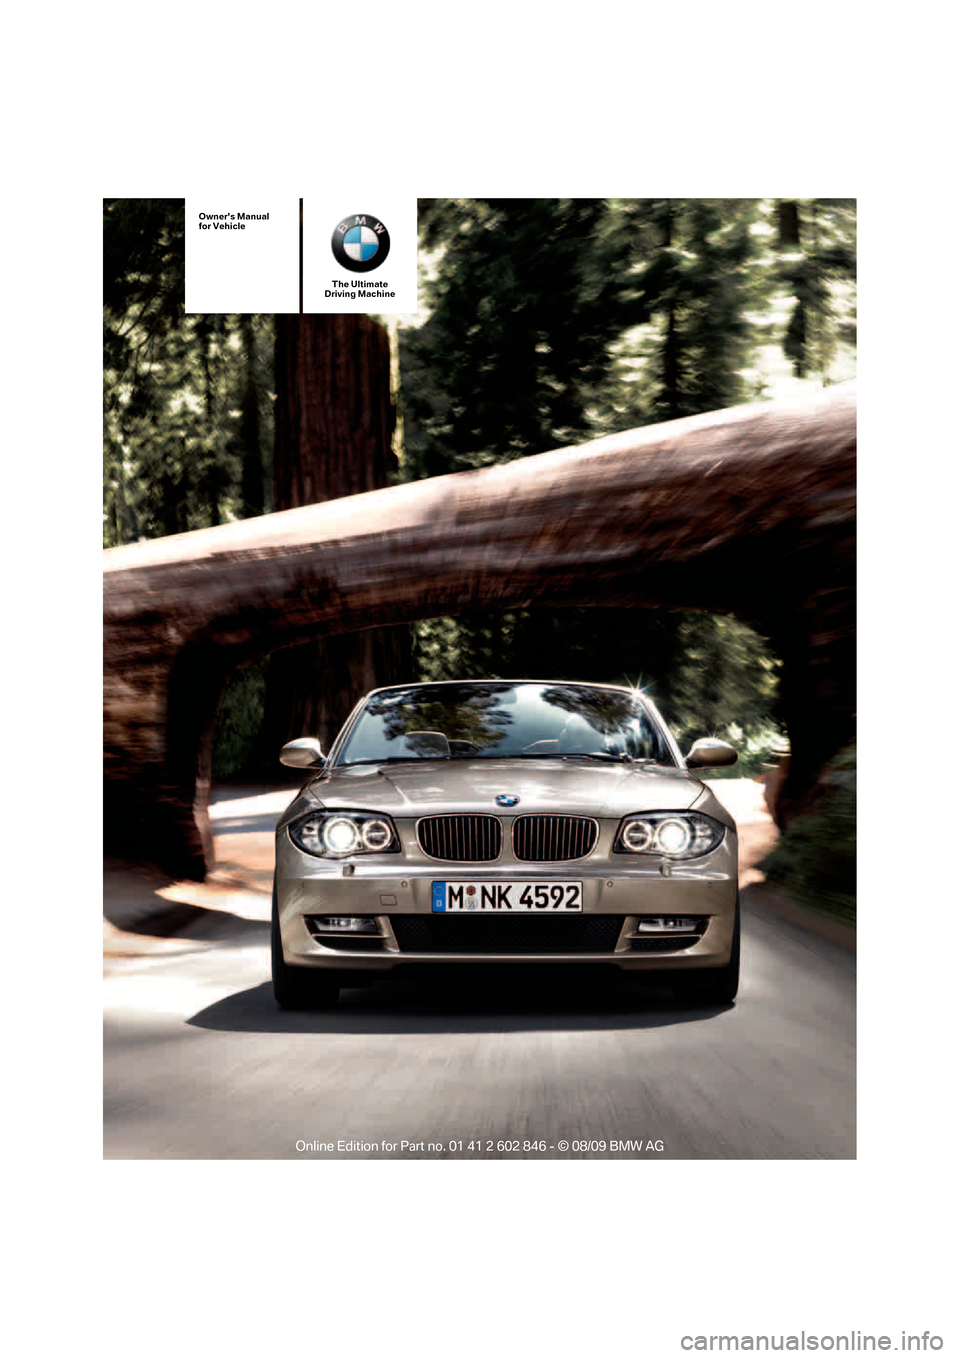 BMW 135I 2010 E81 Owners Manual The Ultimate Driving Machine Owners Manual for Vehicle